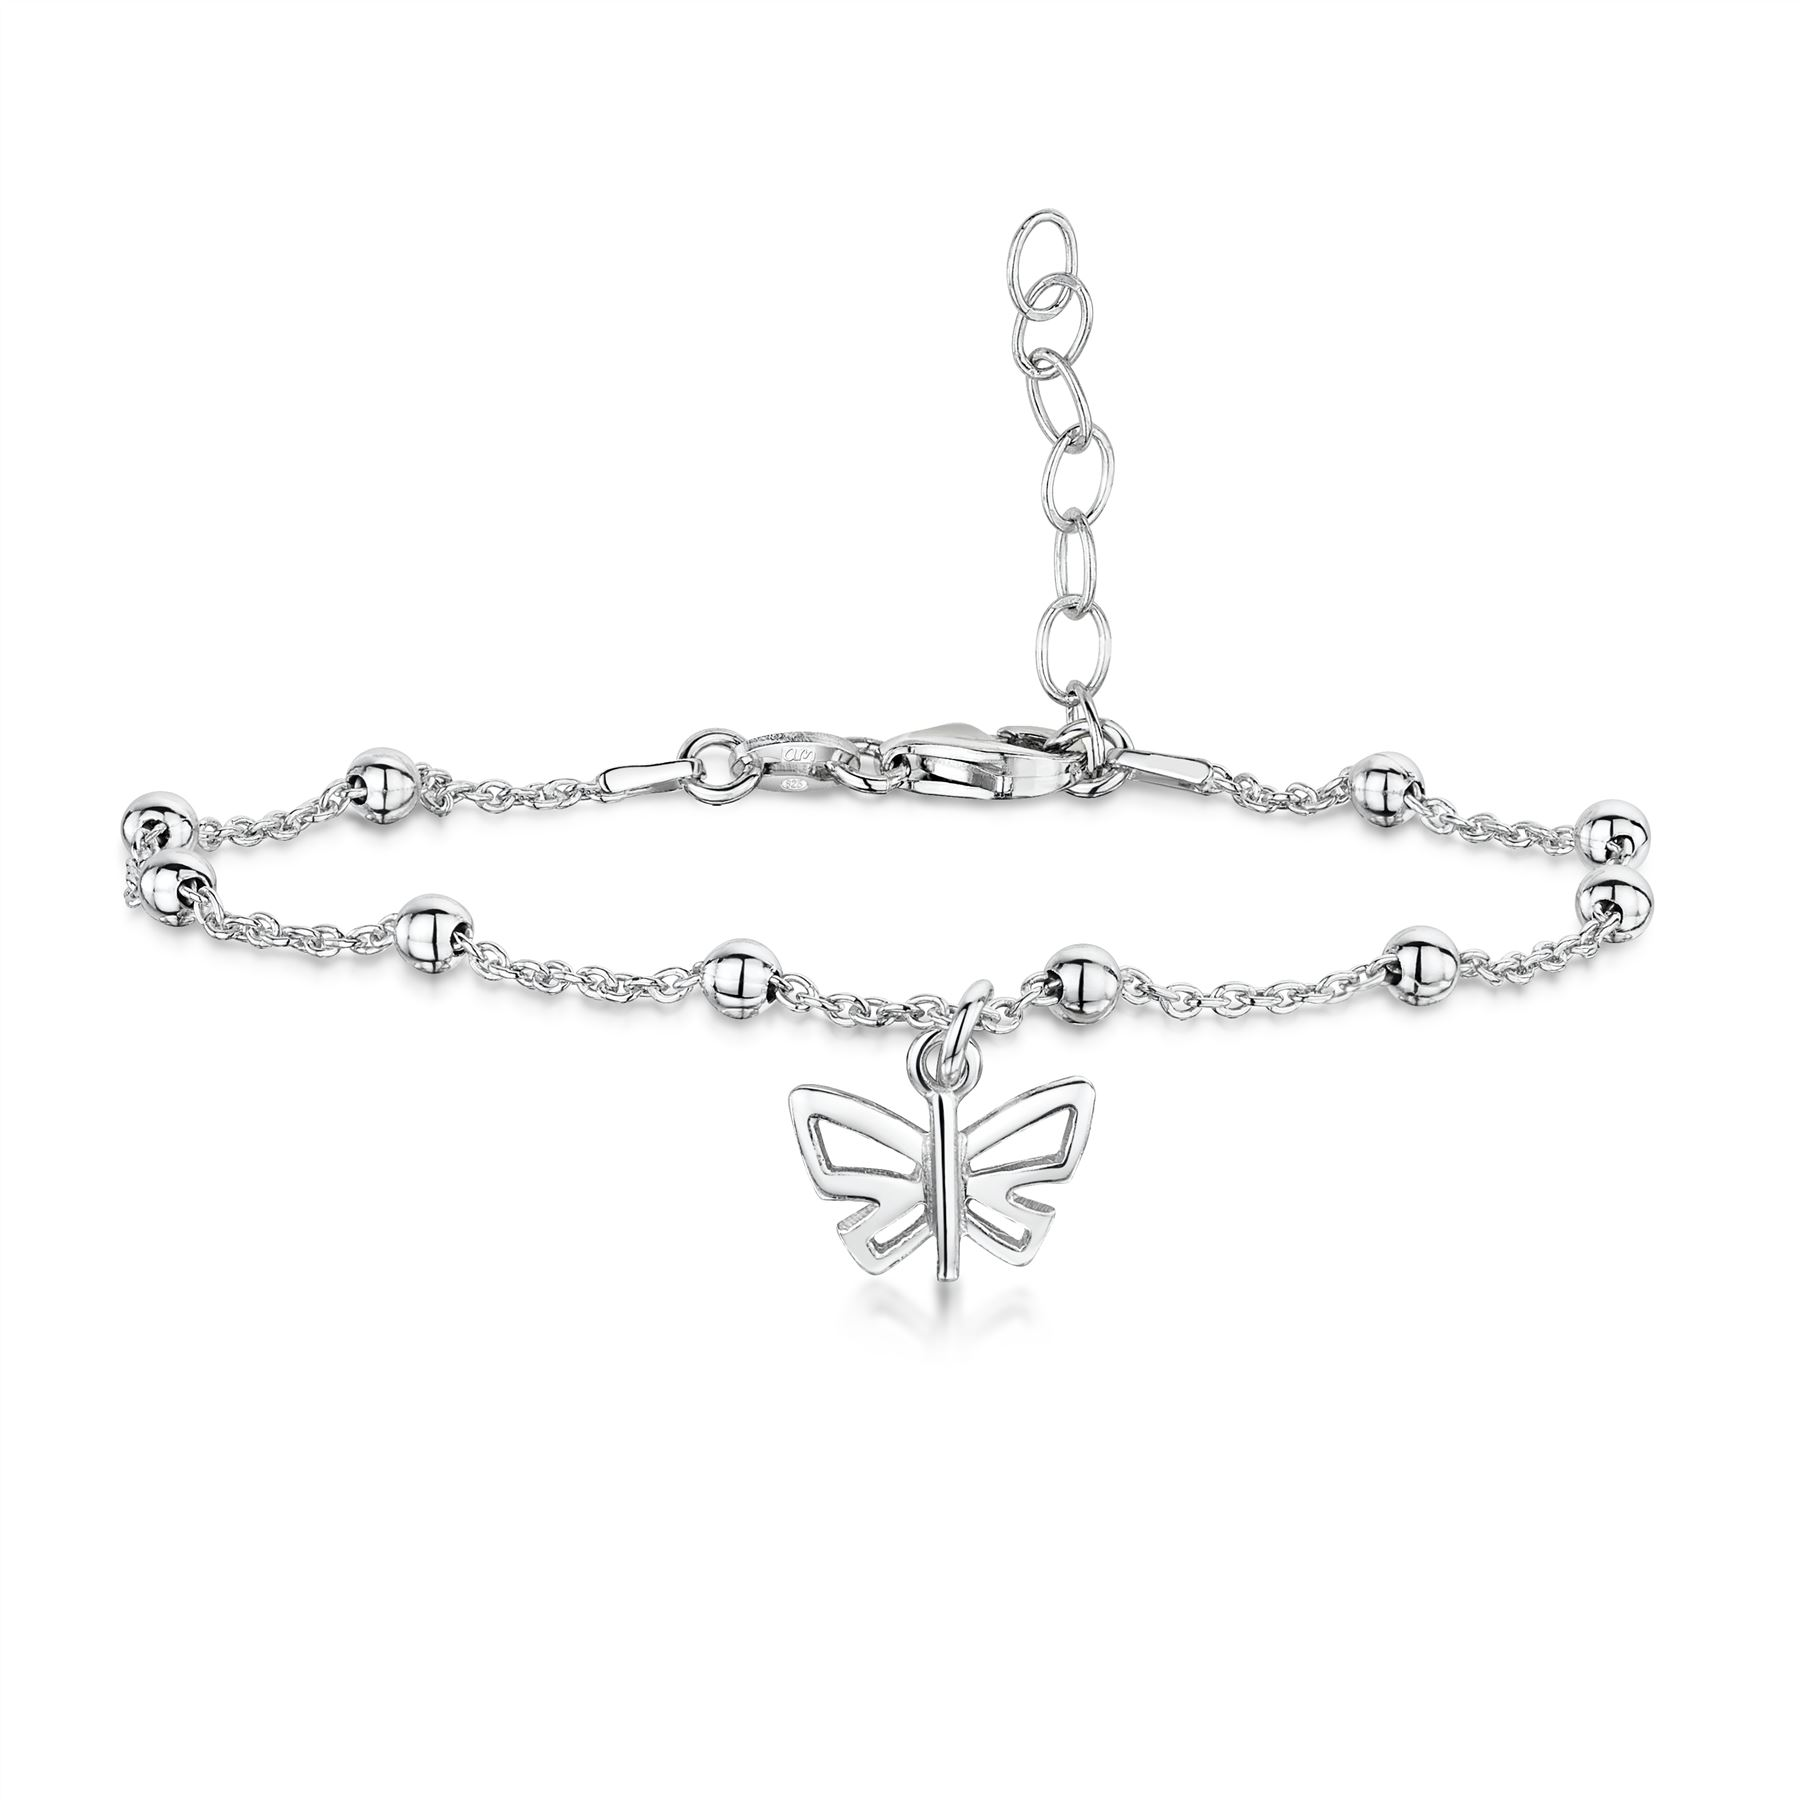 Amberta-Jewelry-925-Sterling-Silver-Adjustable-Anklet-for-Women-Made-in-Italy miniature 24